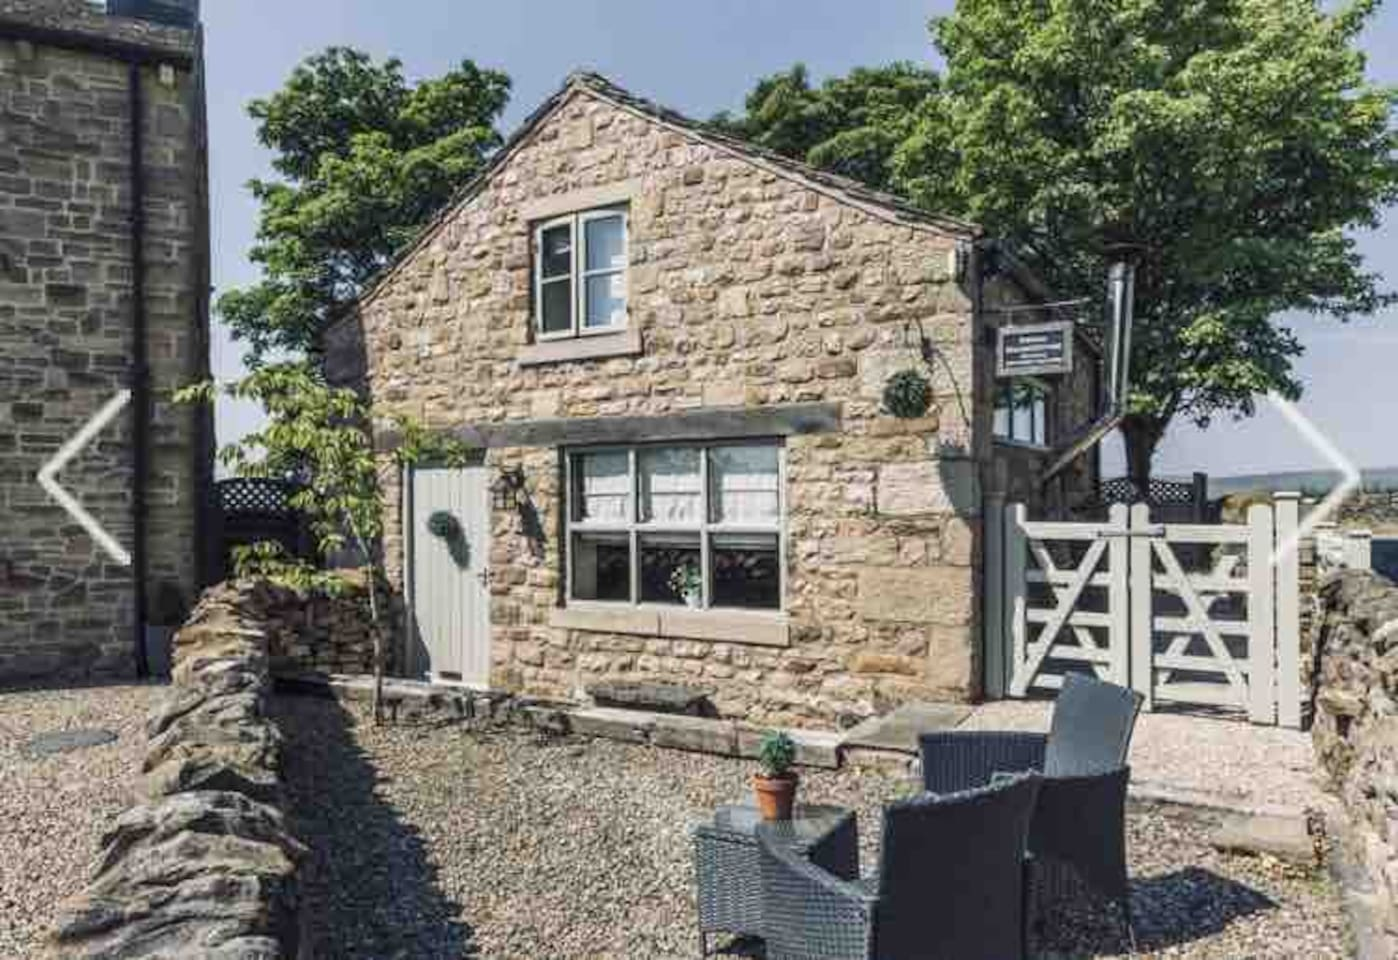 Pinfold Cottage frontage on approach.  Access is through a little gate on the side, follow Cottage stepping stones round the back down a step to the back door where the keysafe is located